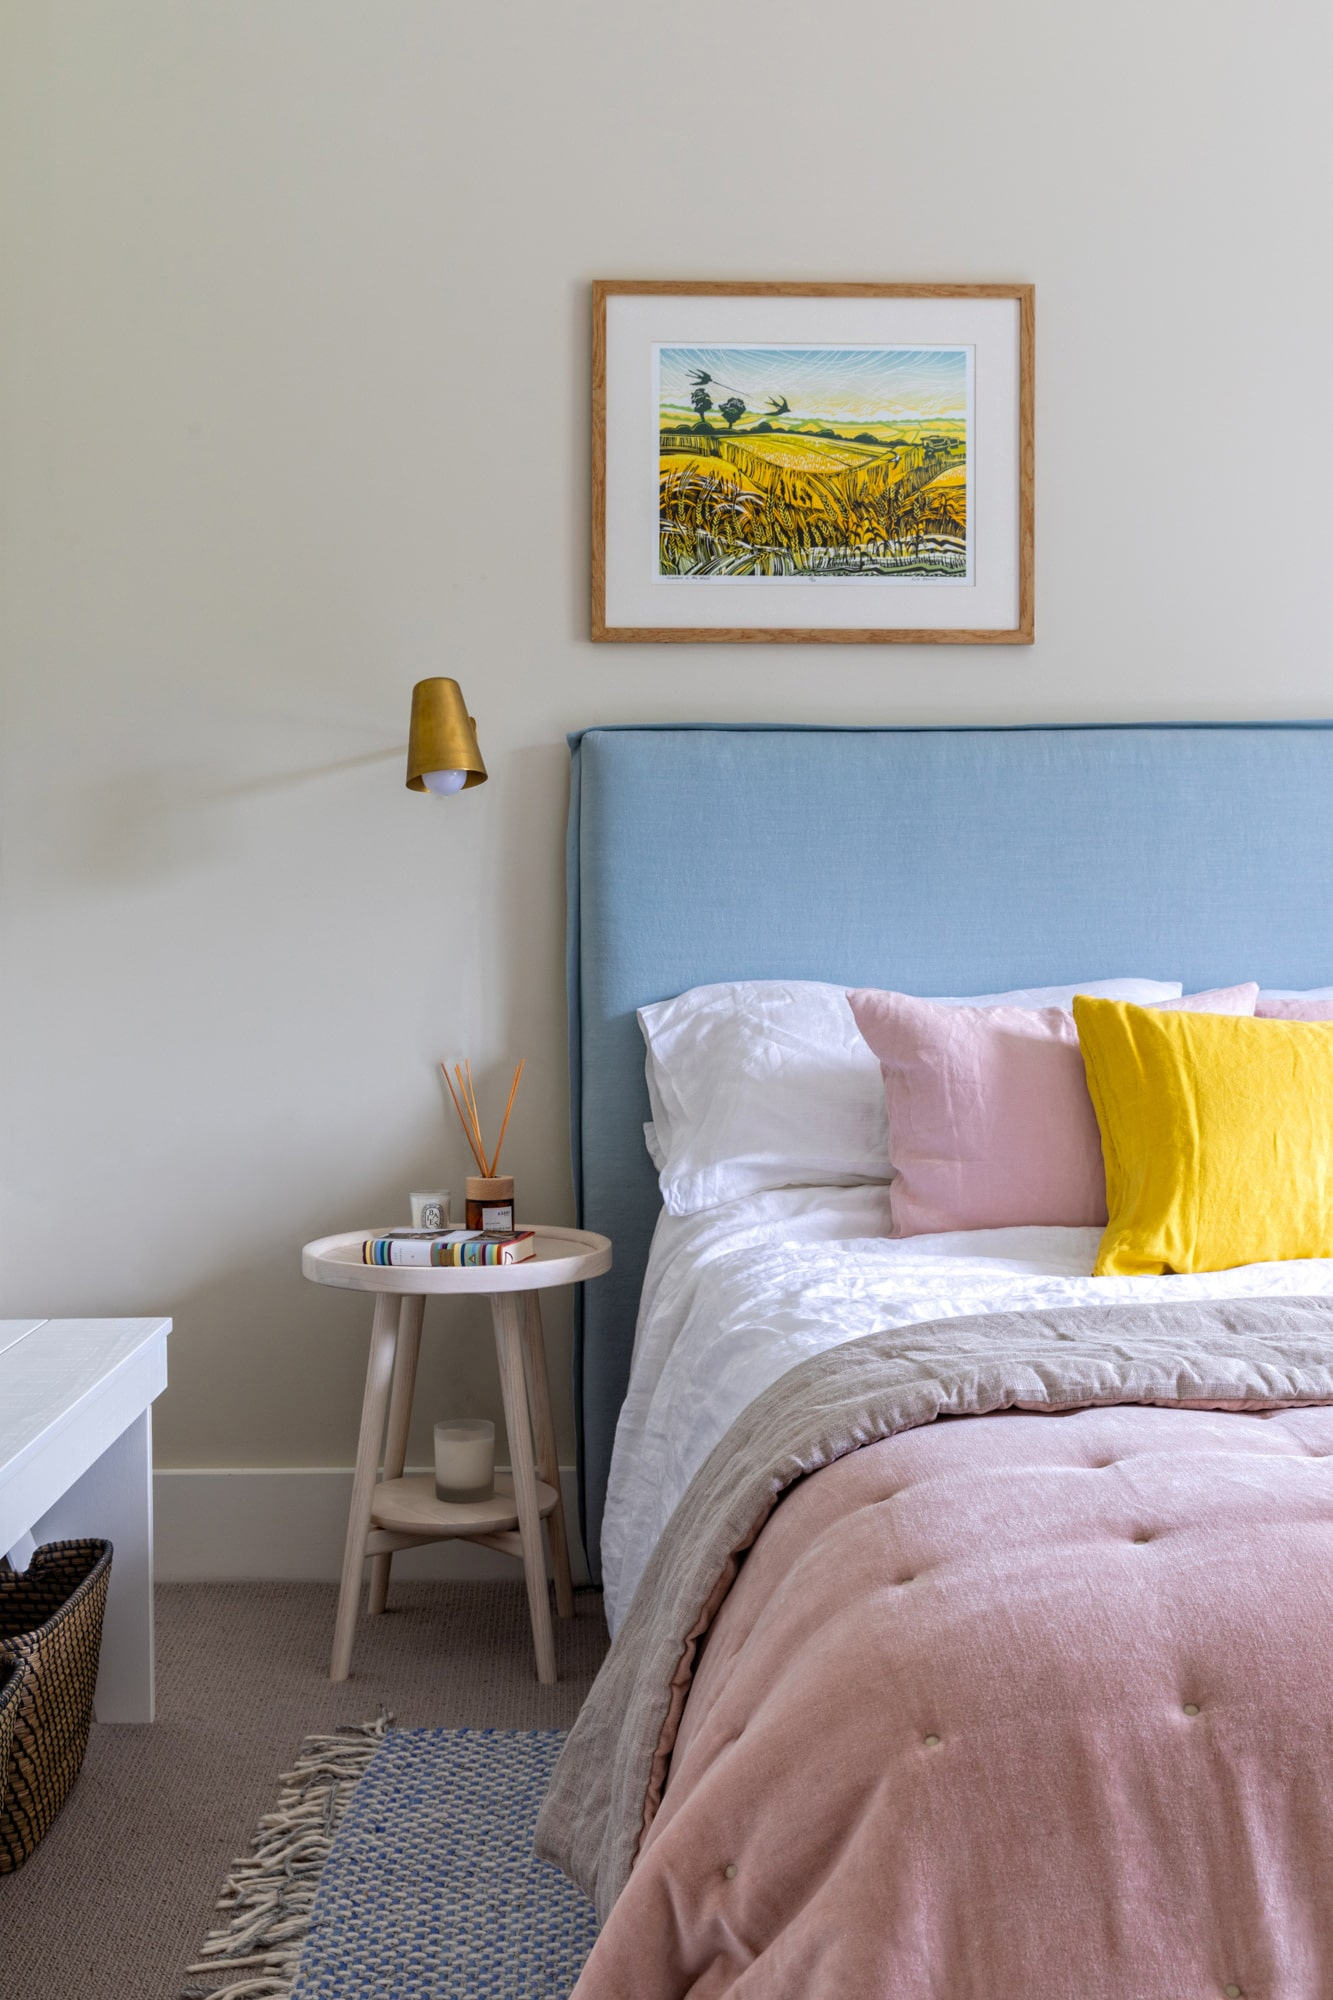 interior: bedroom in pink and blue colours with yellow details